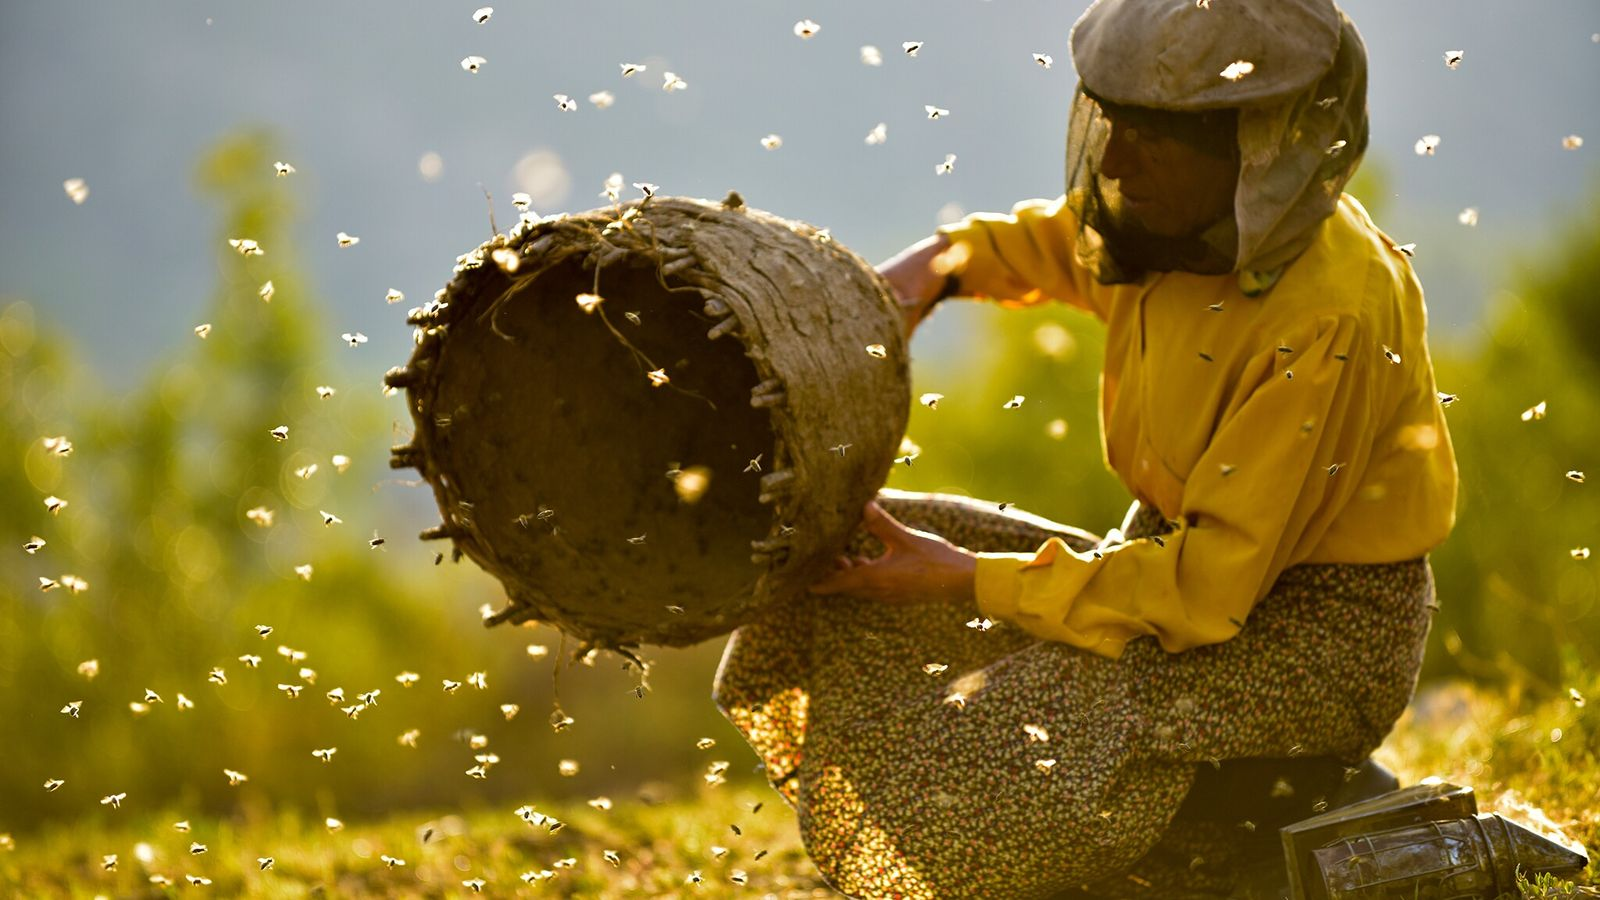 Honeyland, directed by Tamara Kotevska and Ljubomir Stefanov (2019), paints a portrait of North Macedonian beekeepers and ...